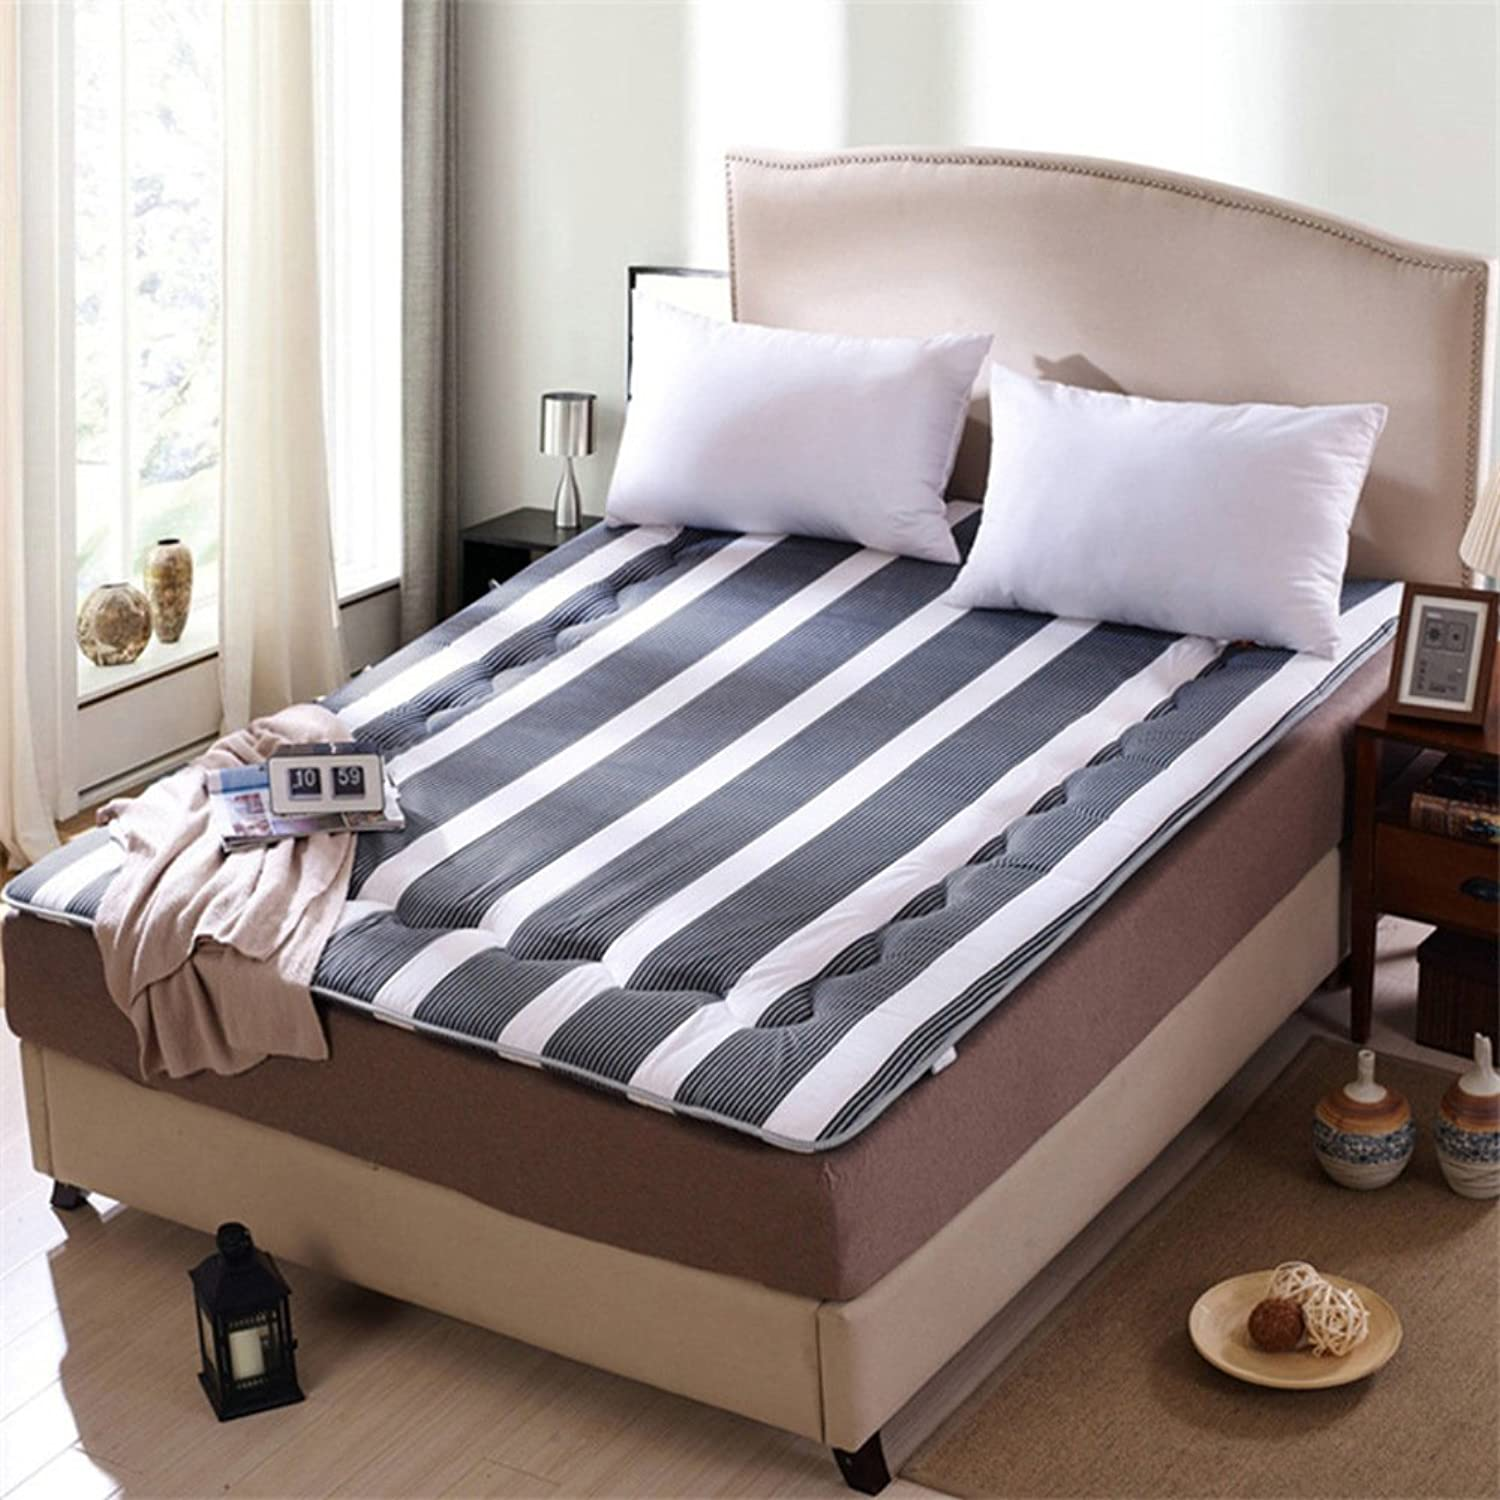 Thicken Stripe Mattress,Double Breathable Soft Student Sleeping pad Mattress Collapsible Tatami Sleeping pad -B 100x200cm(39x79inch)